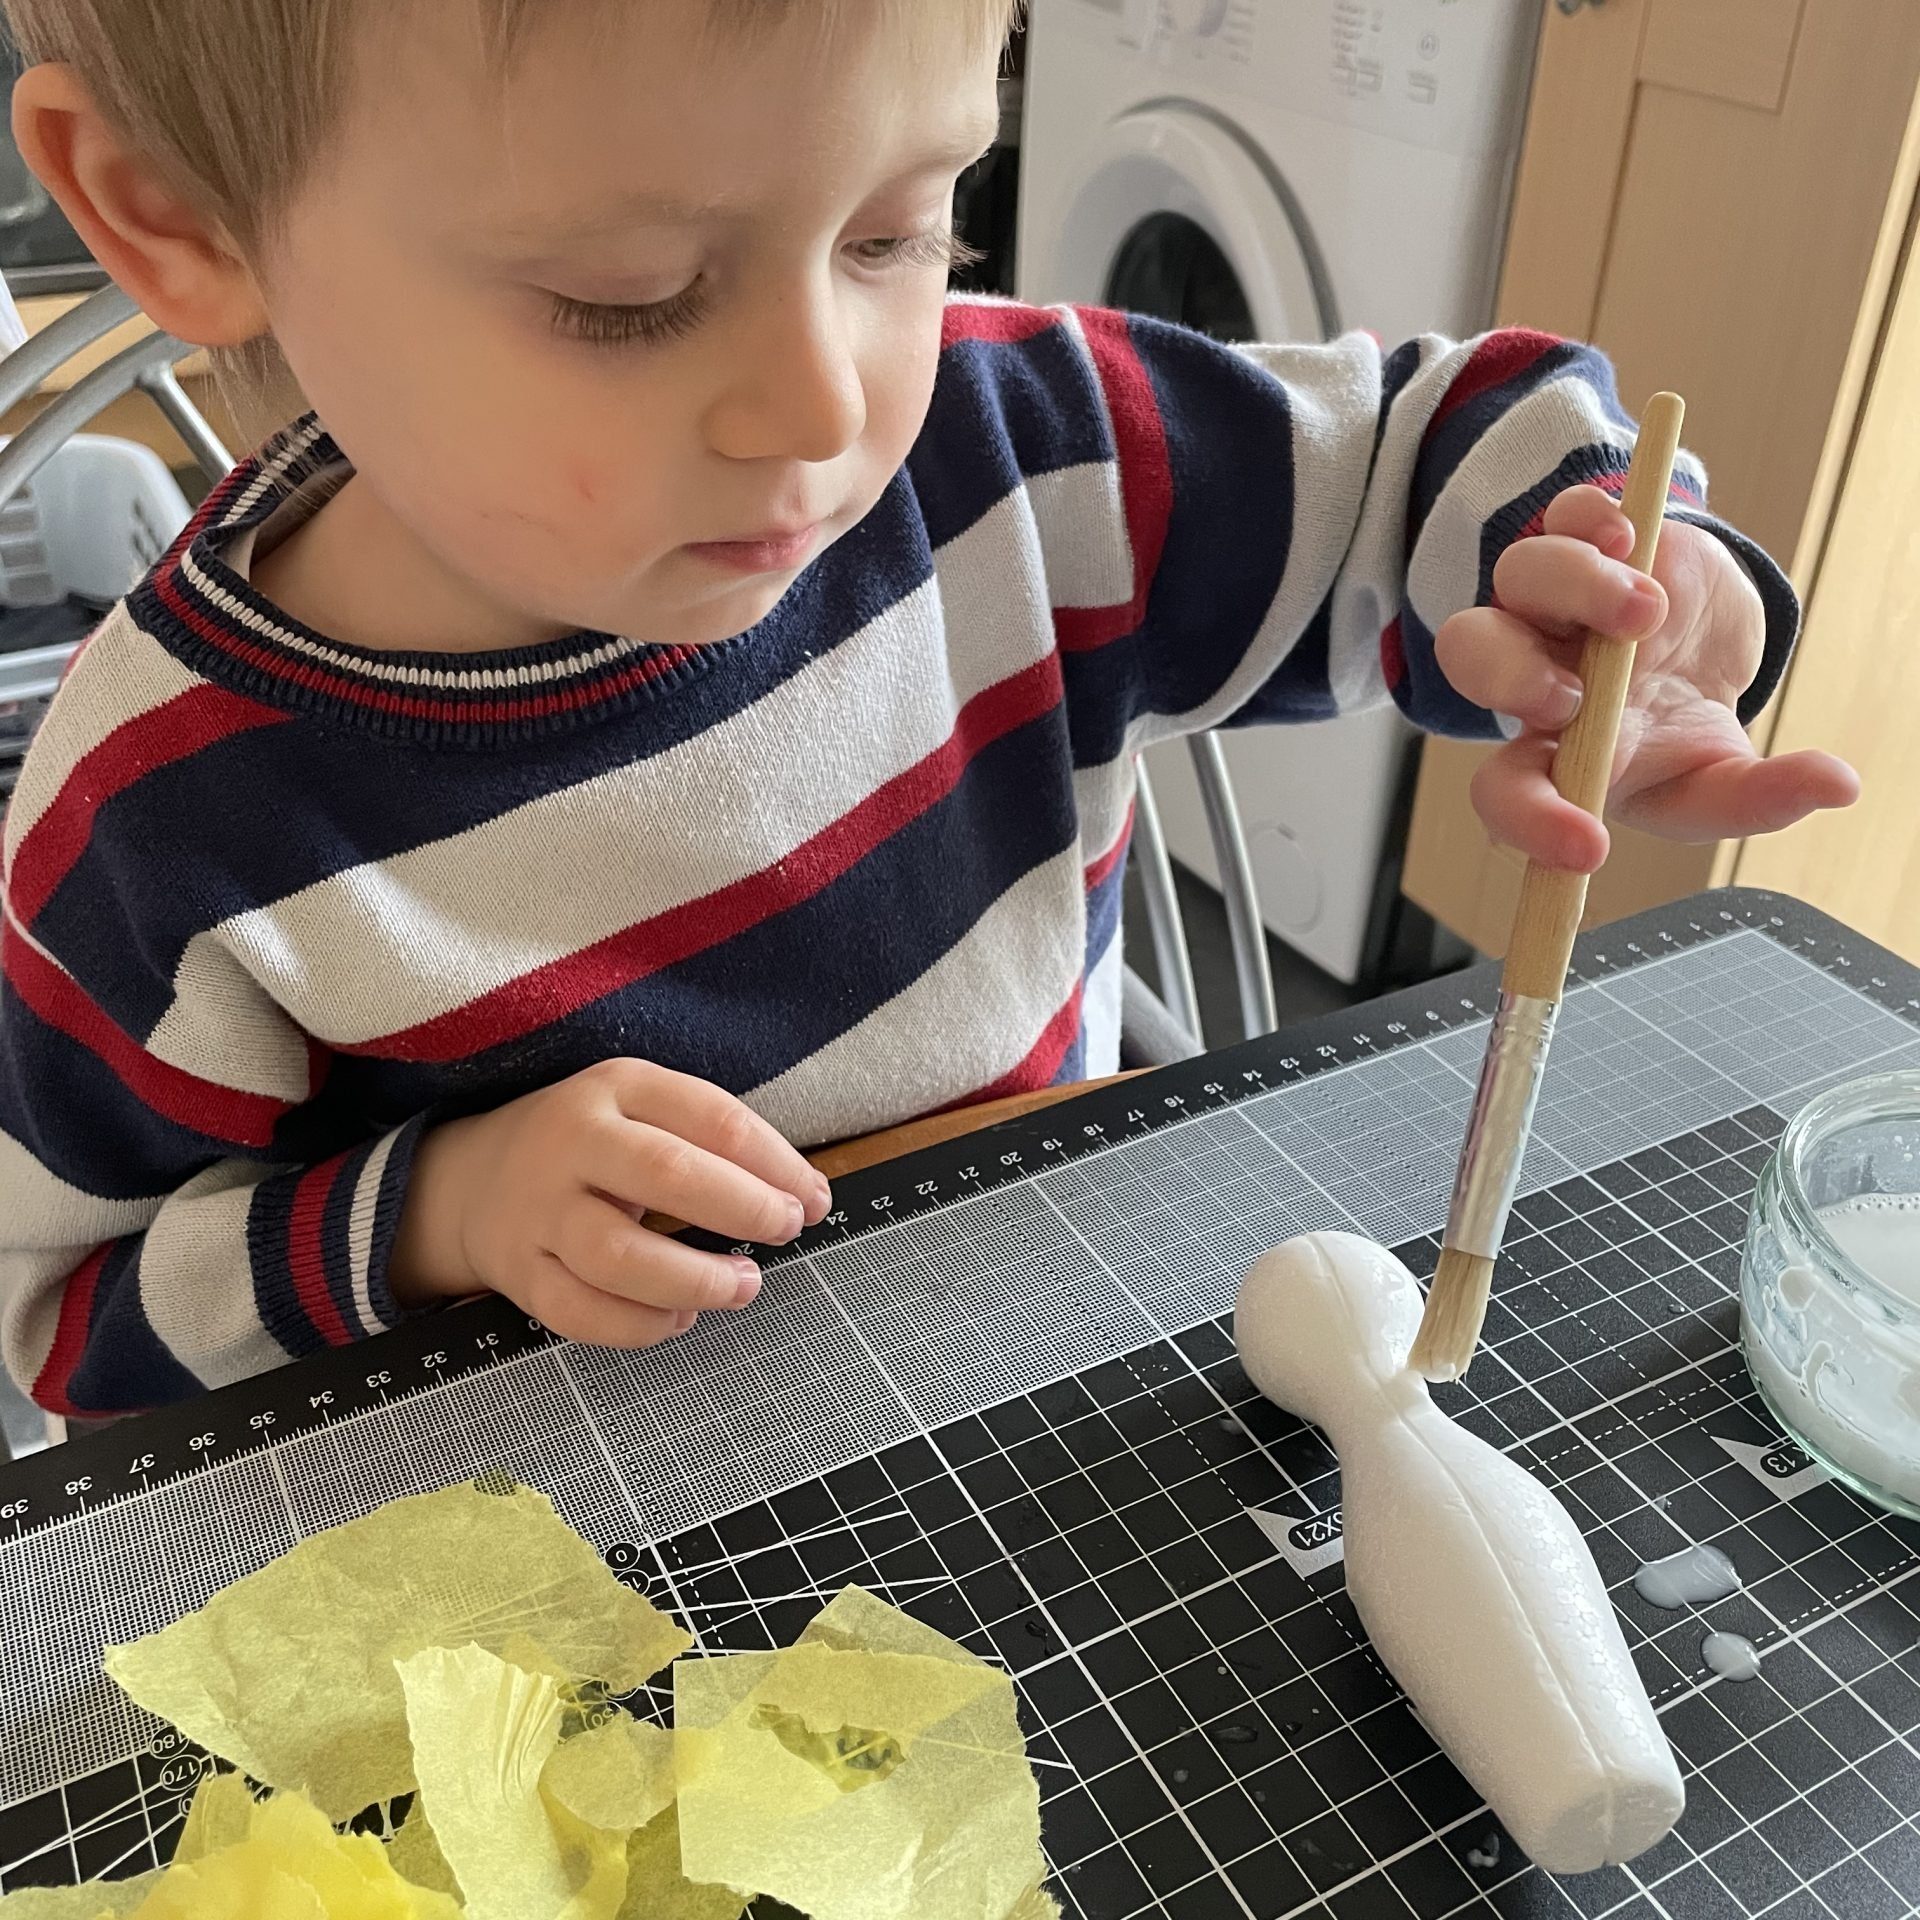 Little J is wearing a blue, white and red jumper. He is sat at a table with a checkered black and white mat in front of him. He is holding a paintbrush and brushing a small bowling Pin with a glue mixture. There is yellow tissue paper next to him